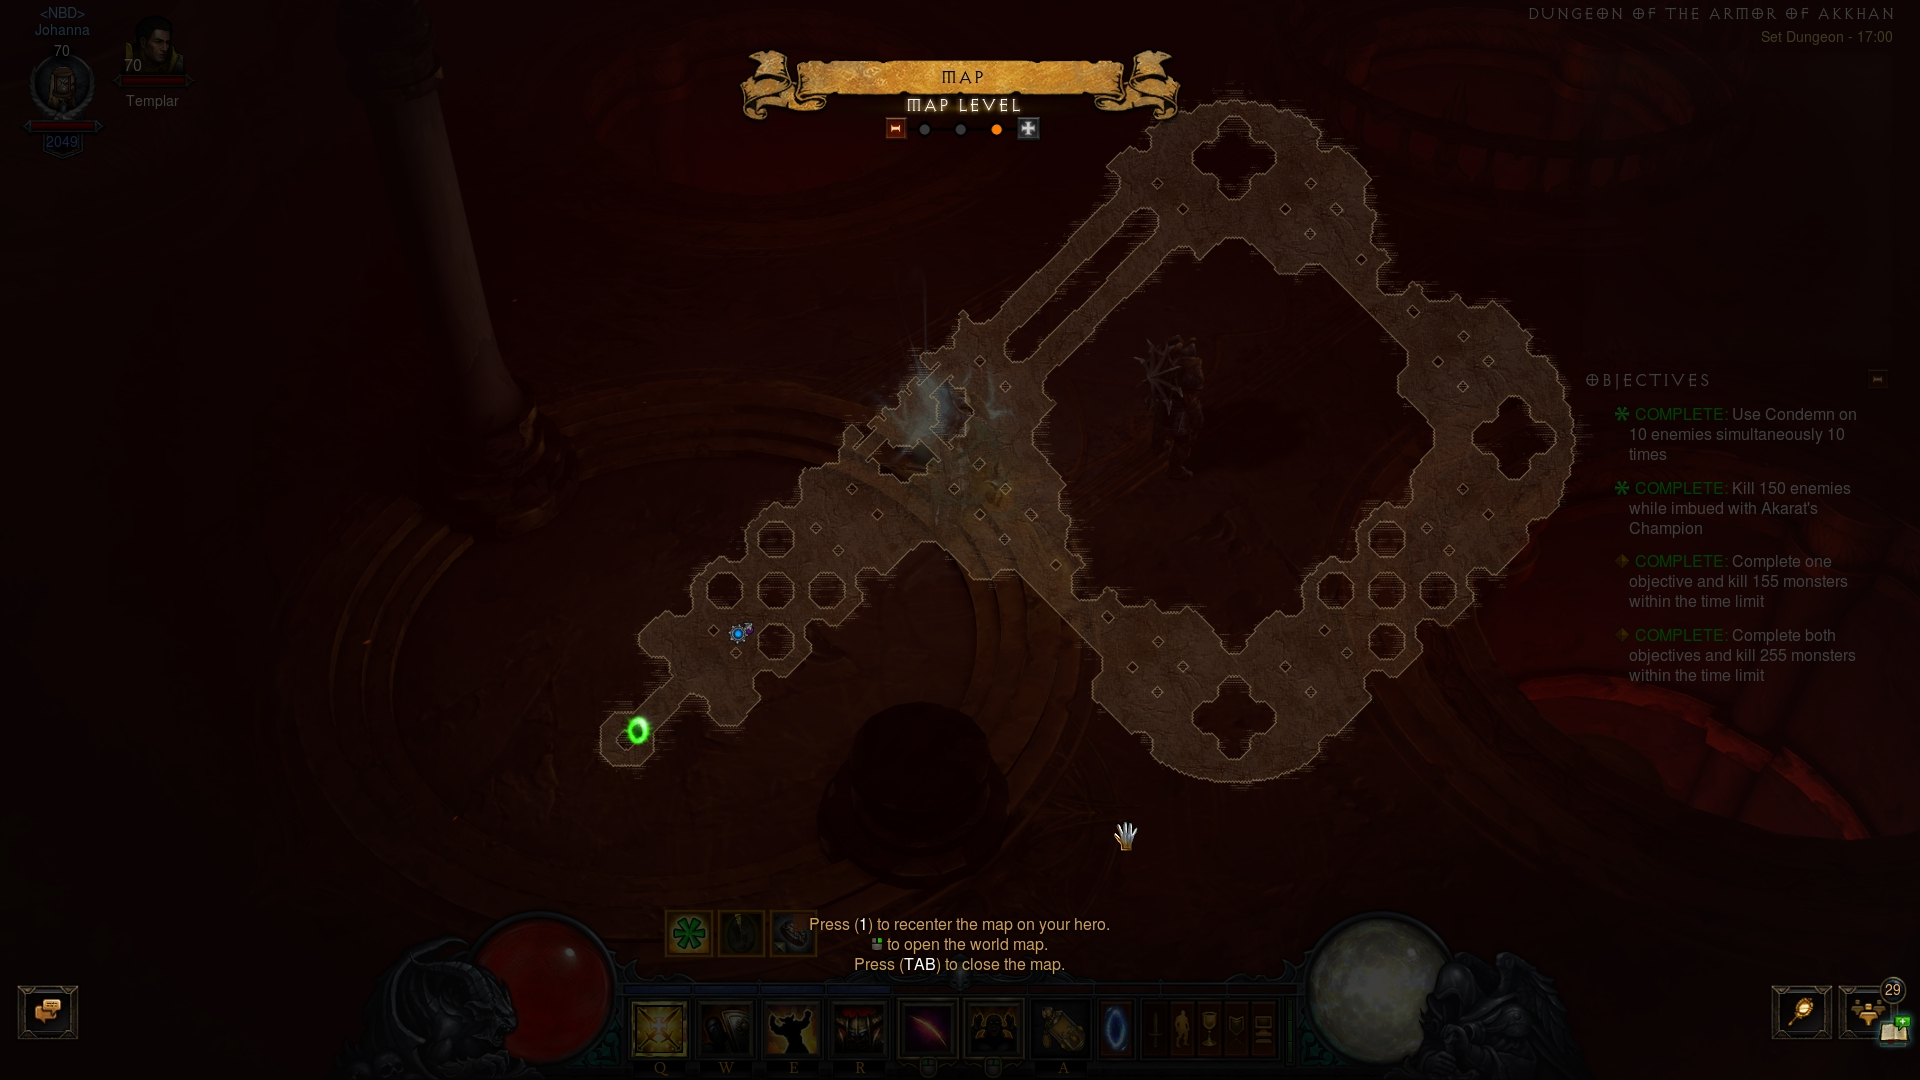 Location of Akkhan set dungeon